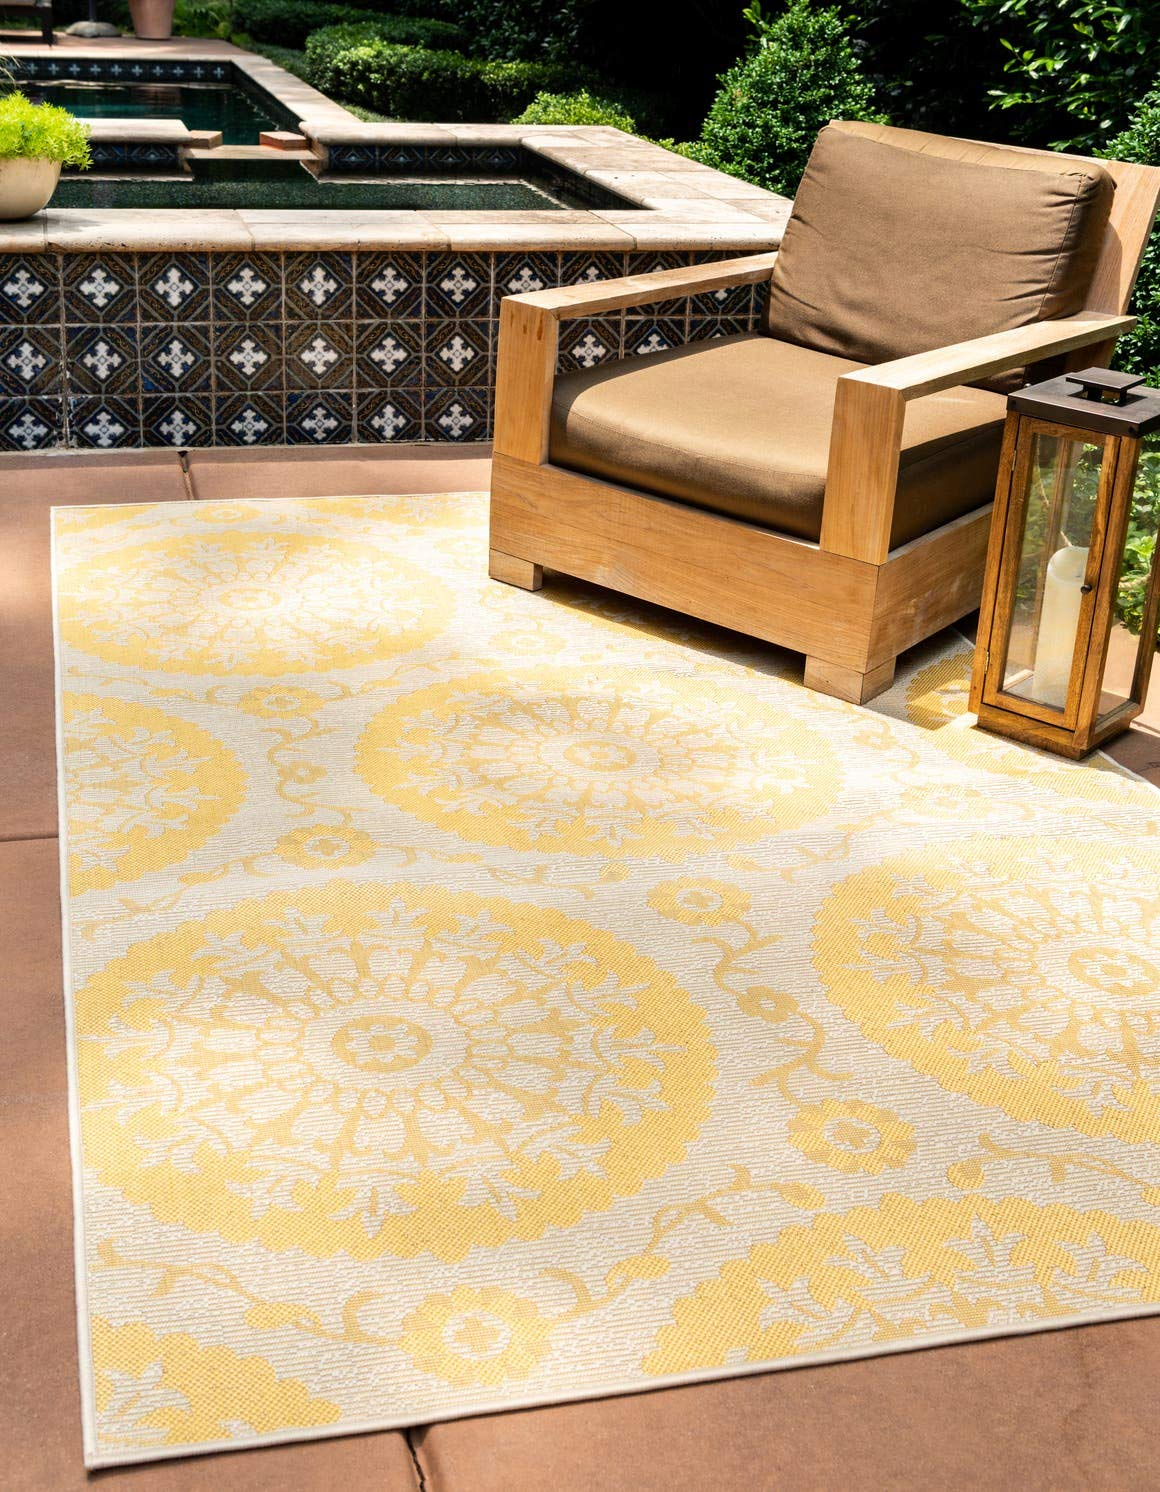 Unique Loom Outdoor Botanical Collection Floral Abstract Transitional Indoor and Outdoor Flatweave Yellow Area Rug 5 3 x 8 0